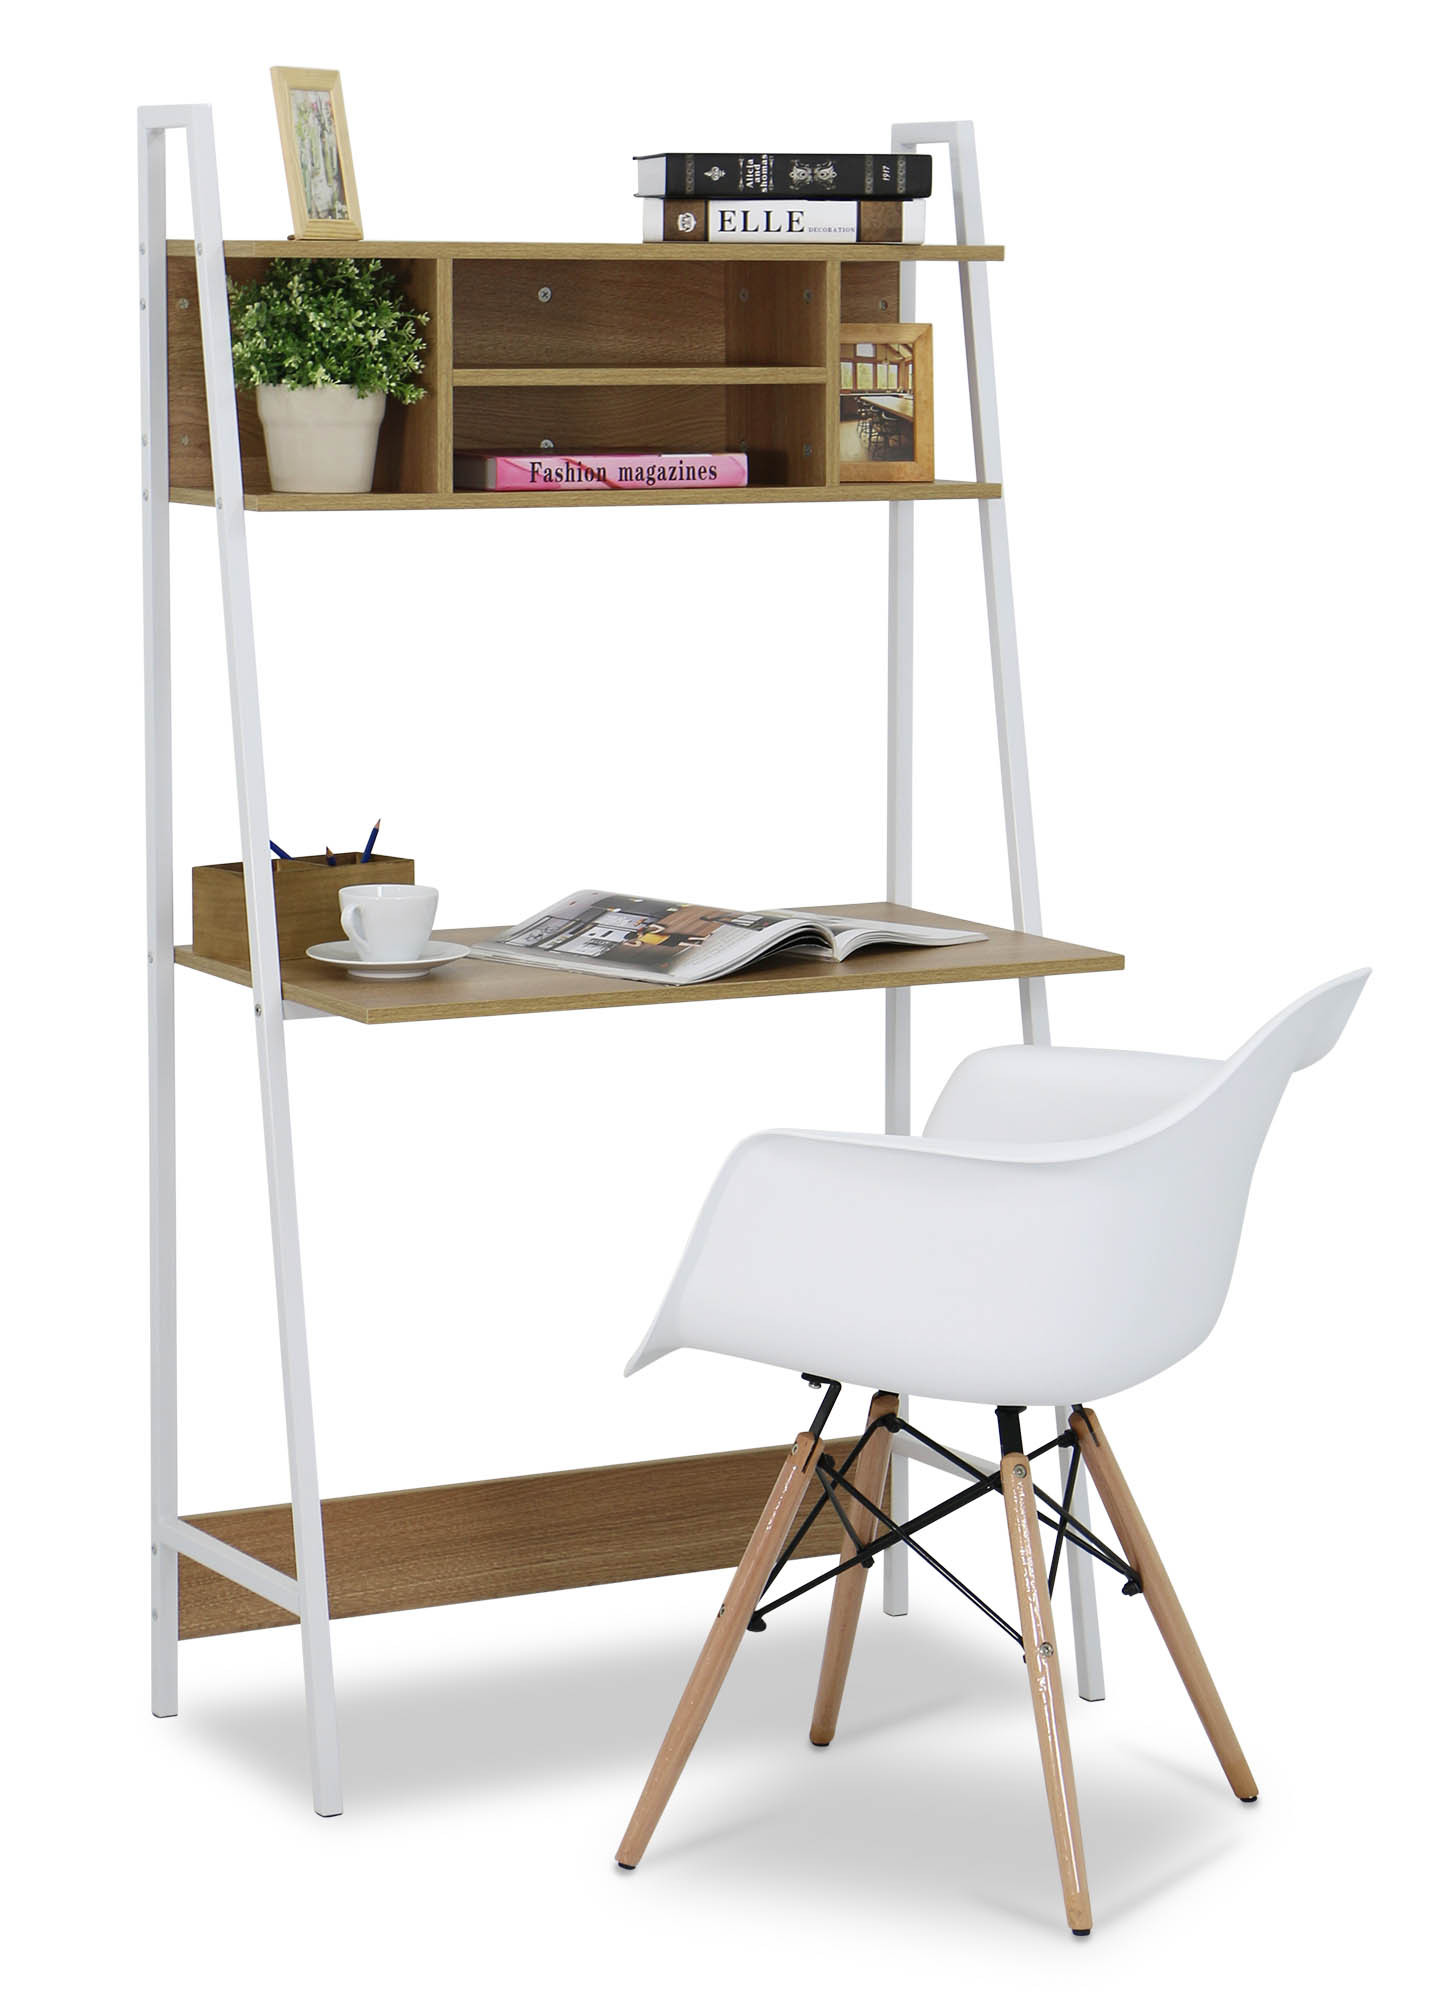 Dorian Study Table Furniture & Home Décor